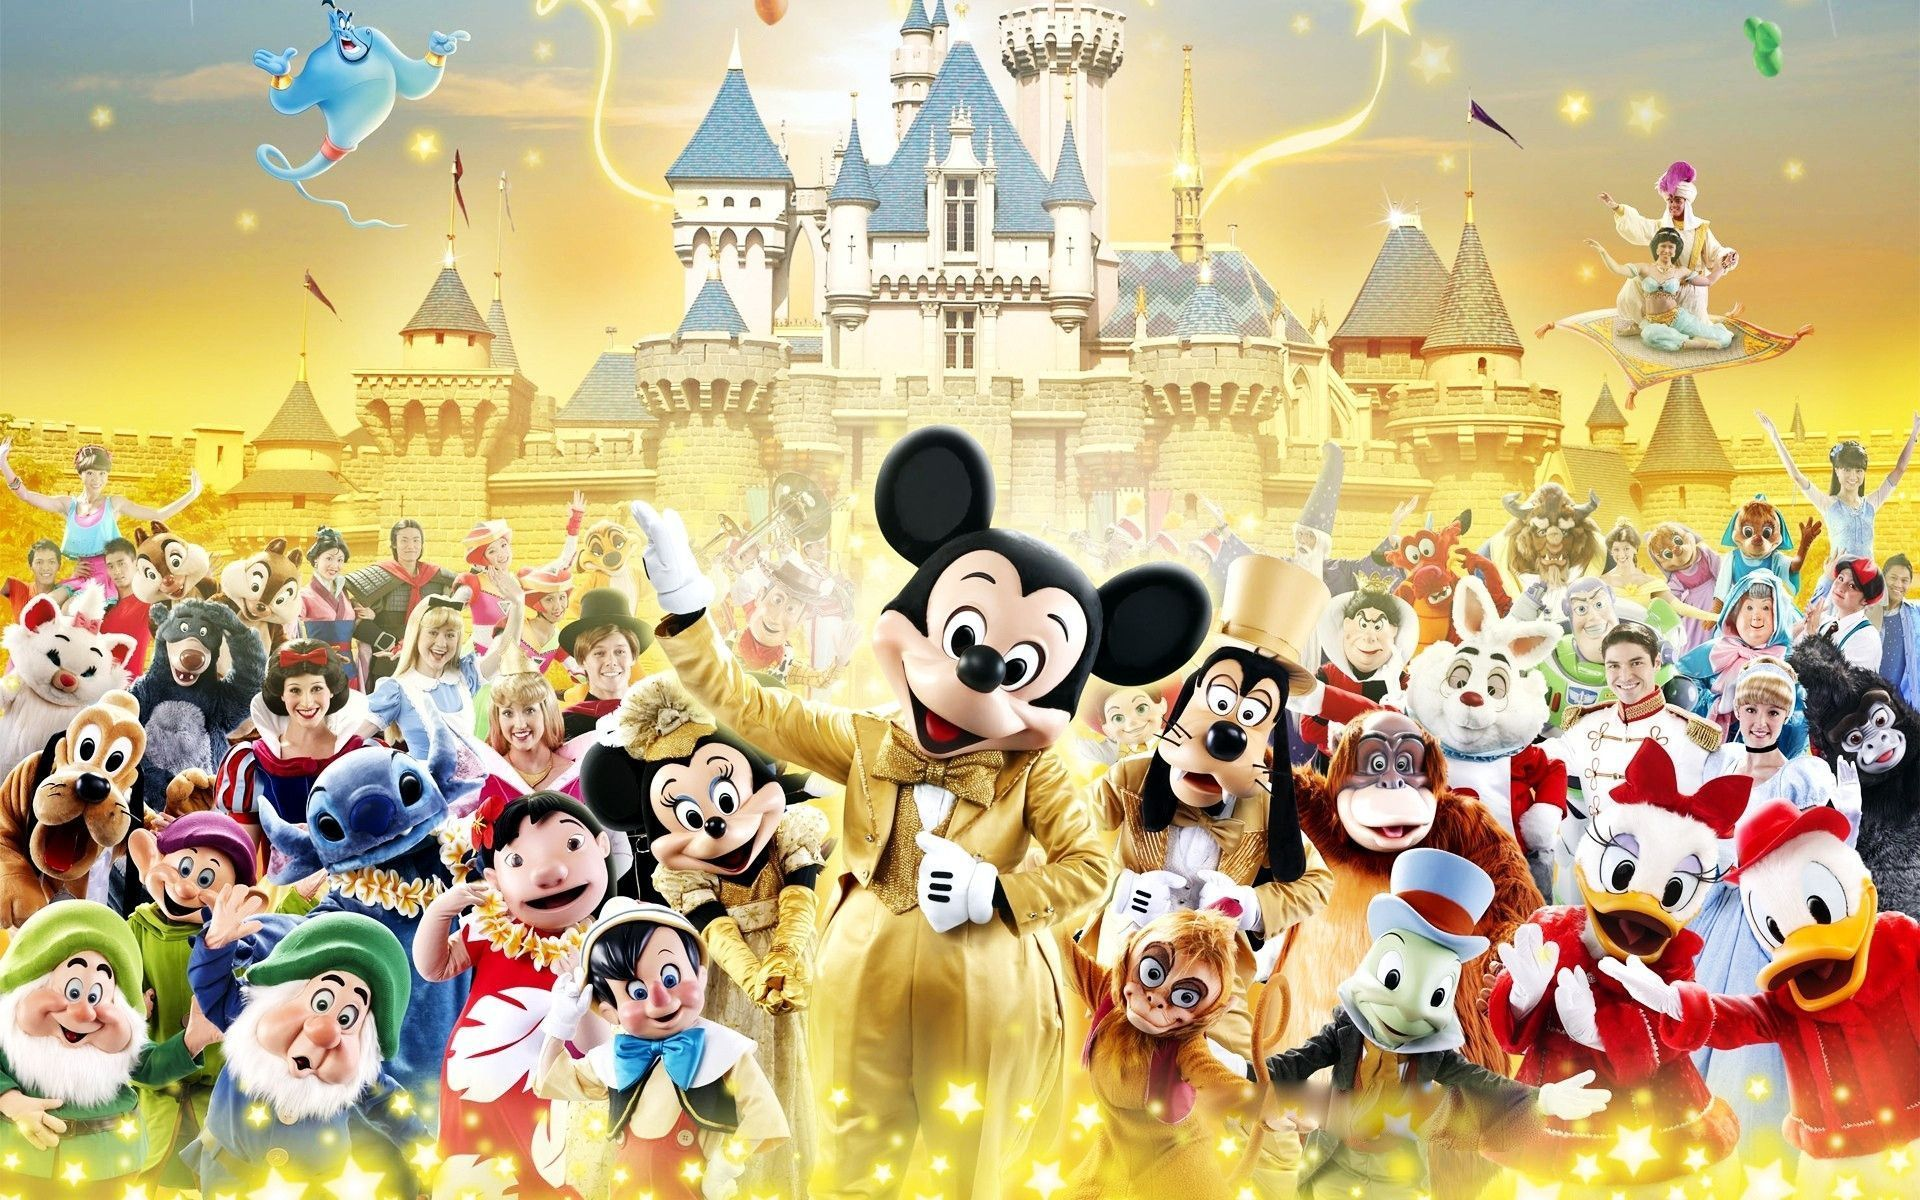 Disney Characters Wallpapers On Wallpaperdog